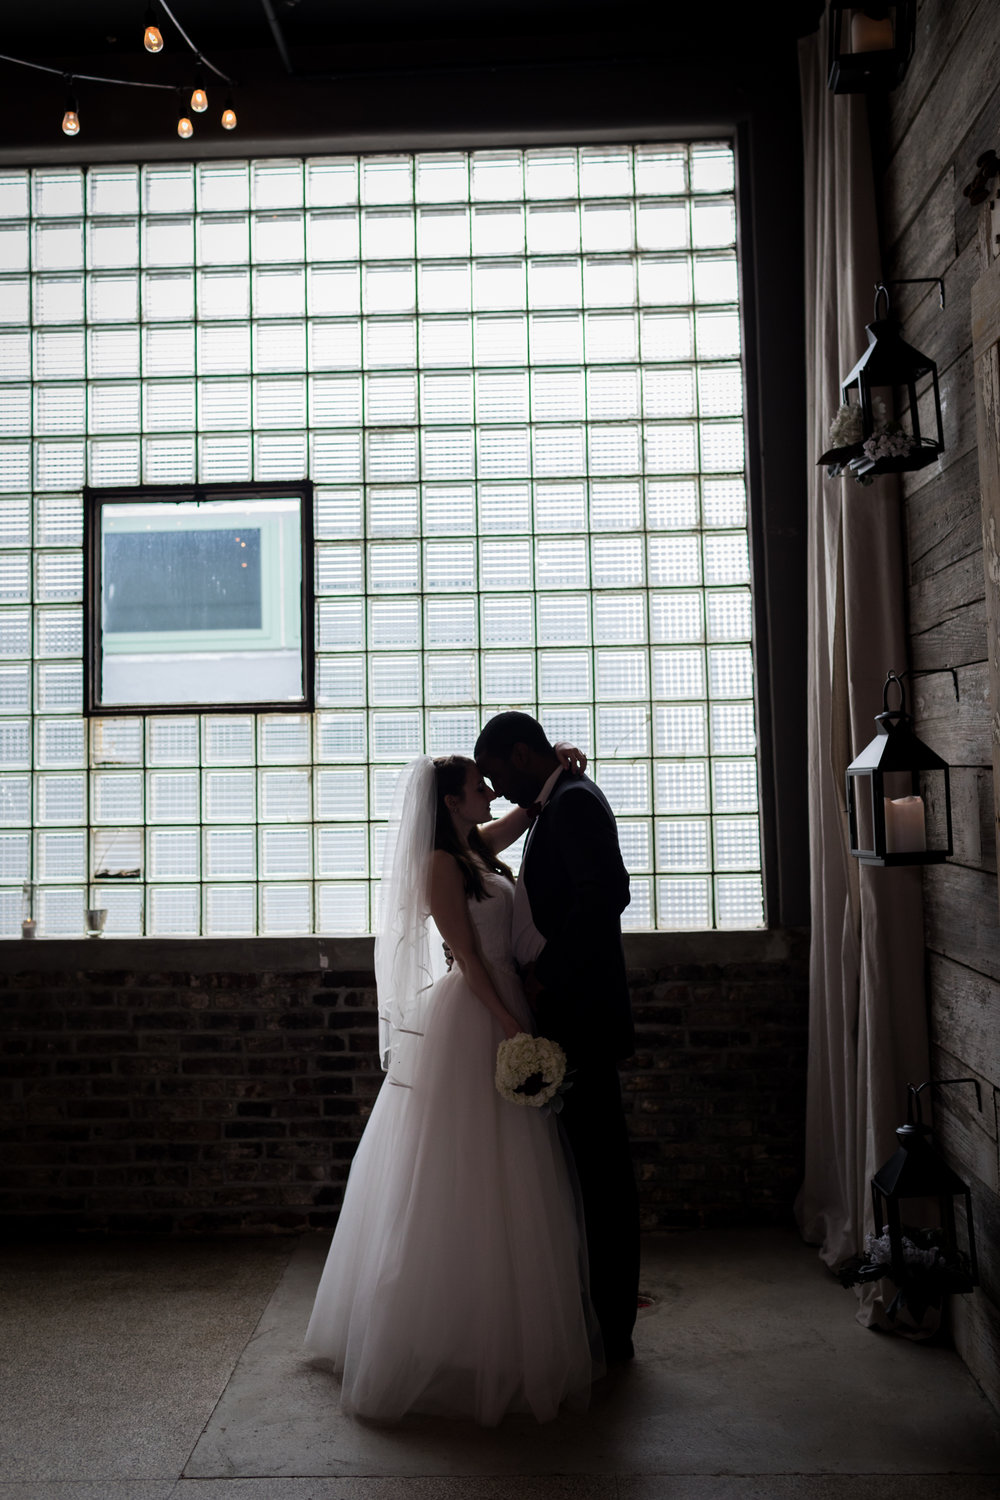 Kansas_City_Small_Wedding_Venue_Elope_Intimate_Ceremony_Budget_Affordable_15MinWedding-129.jpg